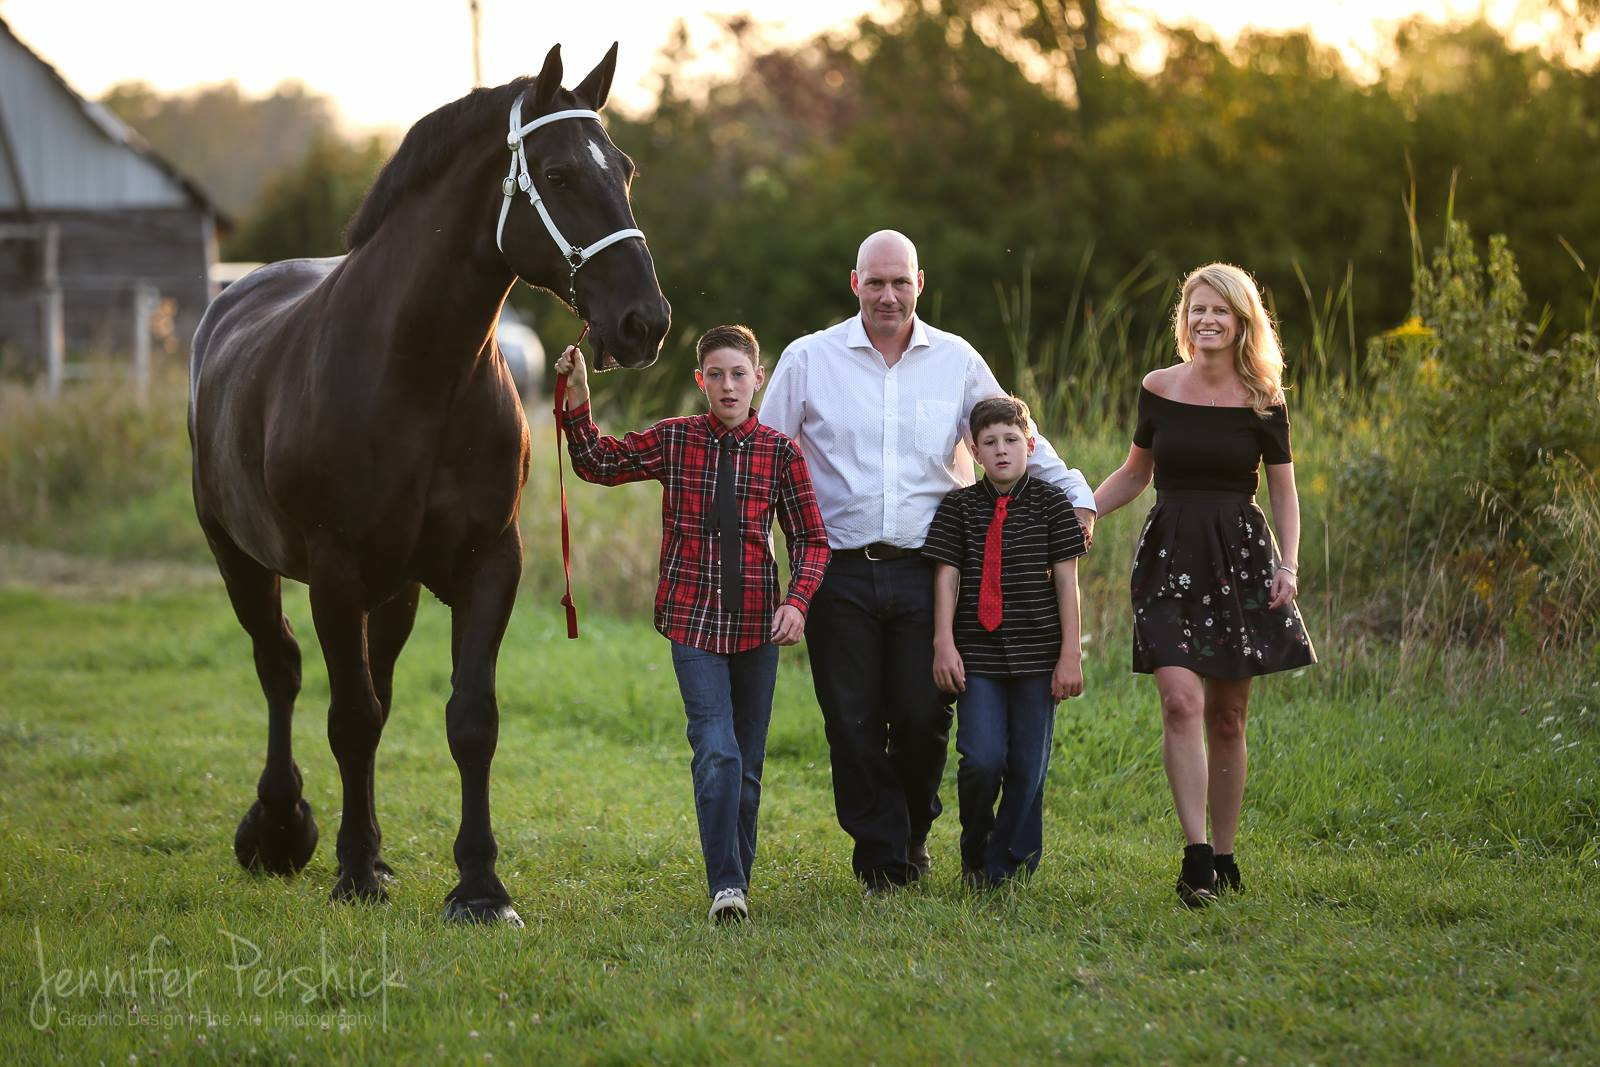 percheron; pana-len percherons; draft horse; heavy horse; greg bourbonnais; paul bourbonnais; gelding; geldings; heavy horses; north american six horse hitch class series